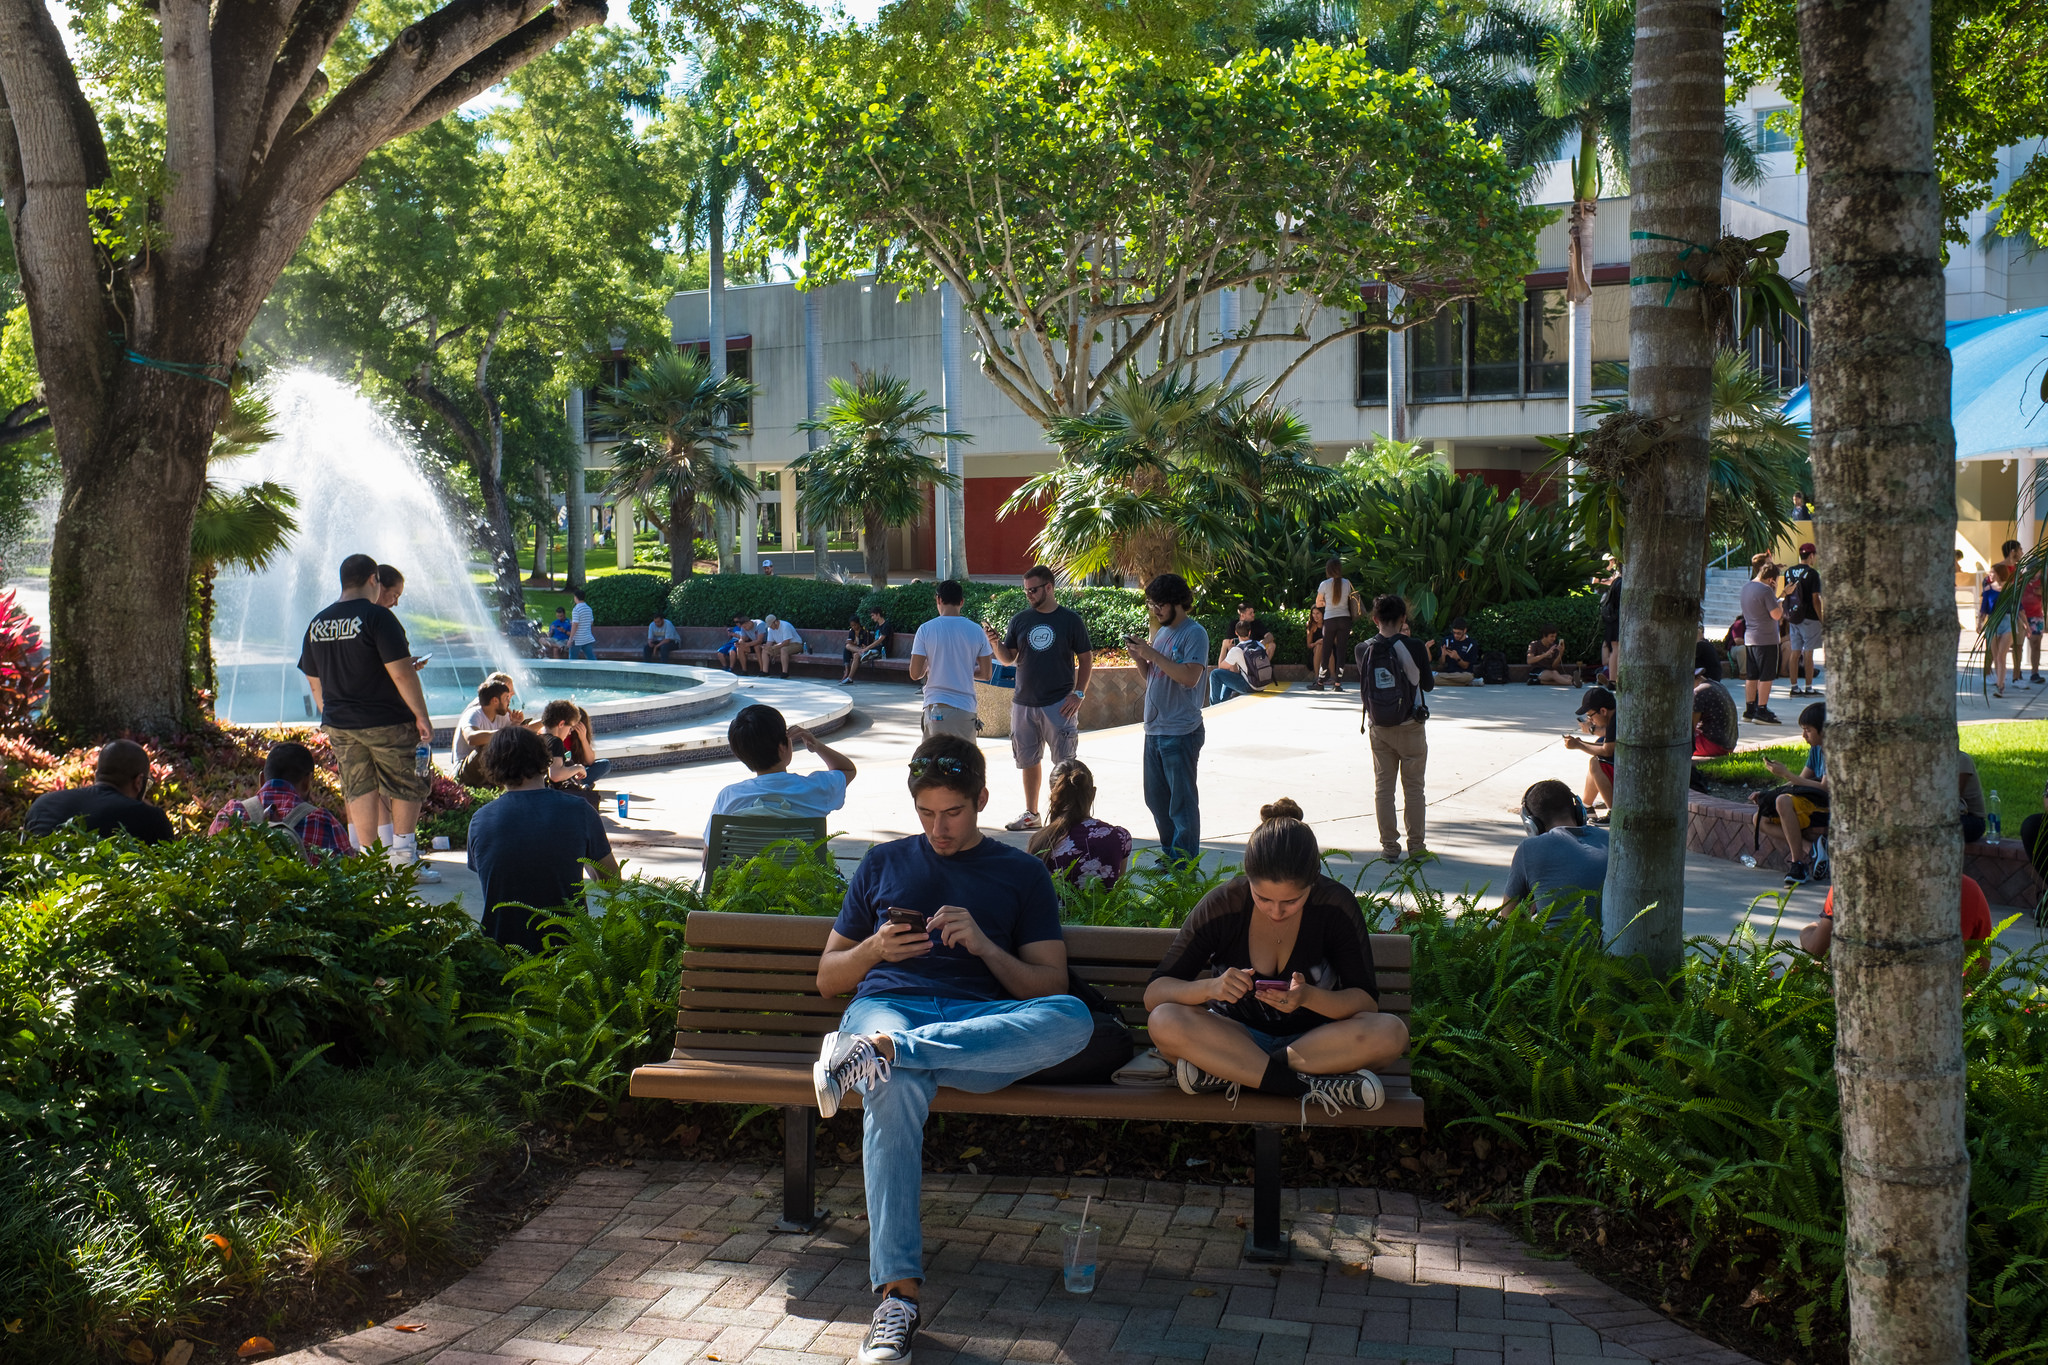 FIU students gather regularly at the fountain outside of the Graham Center to catch Pokémon.